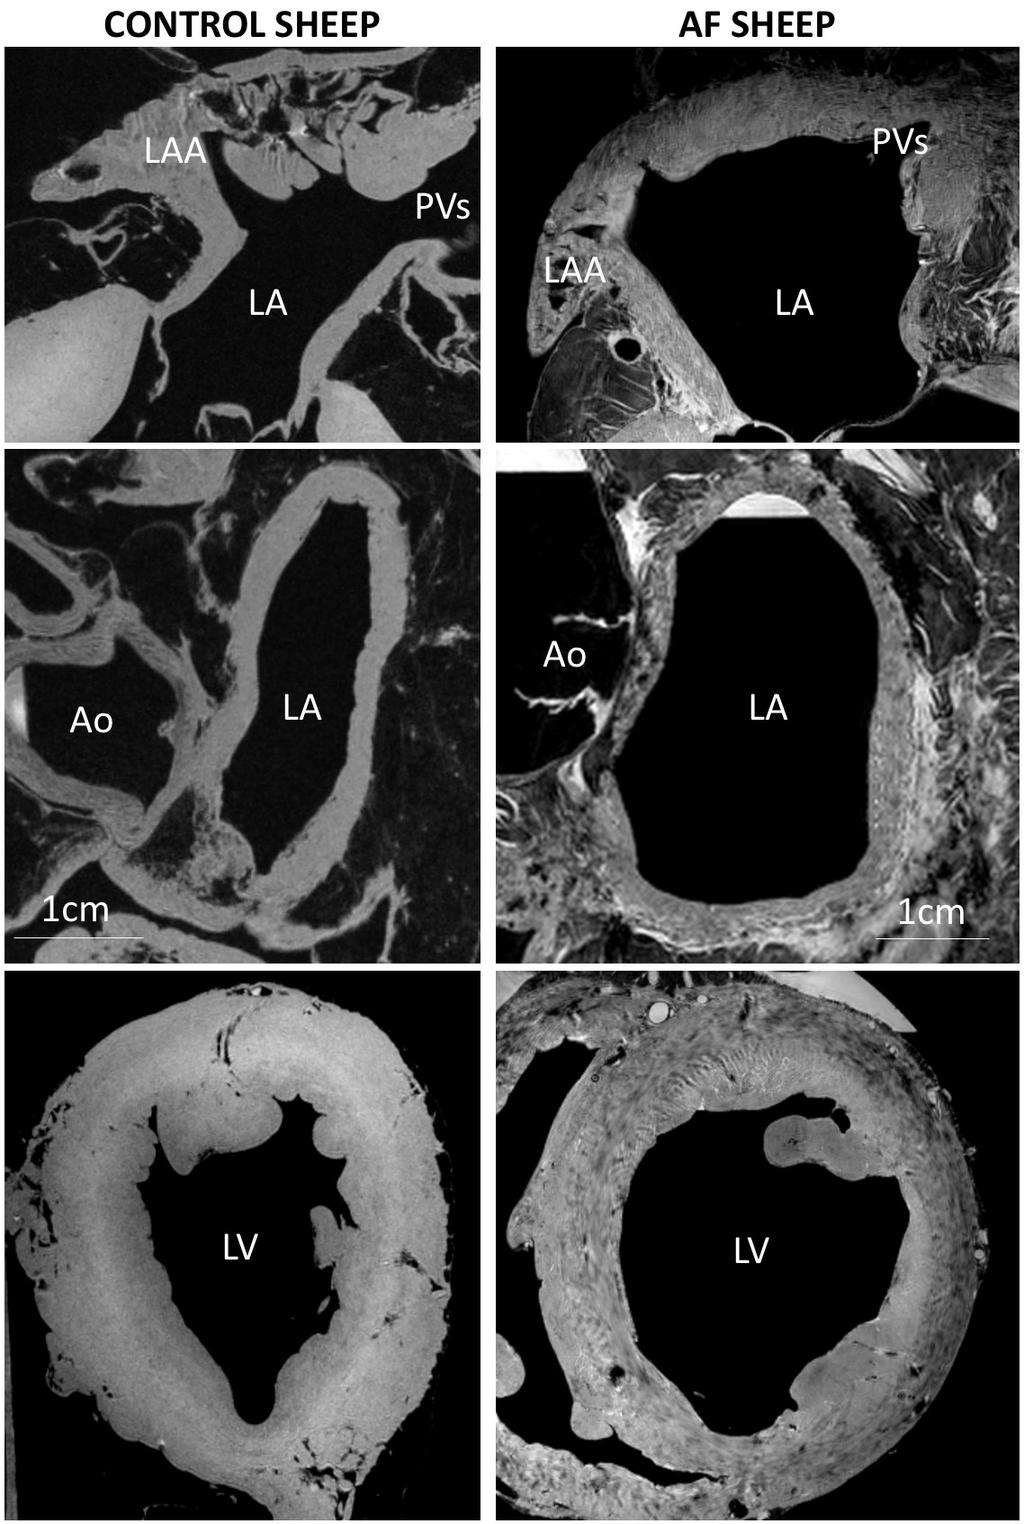 in ctl. Conclusion: High-field MRI reveals early atrial and ventricular structural remodeling in a sheep model of persistent AF.